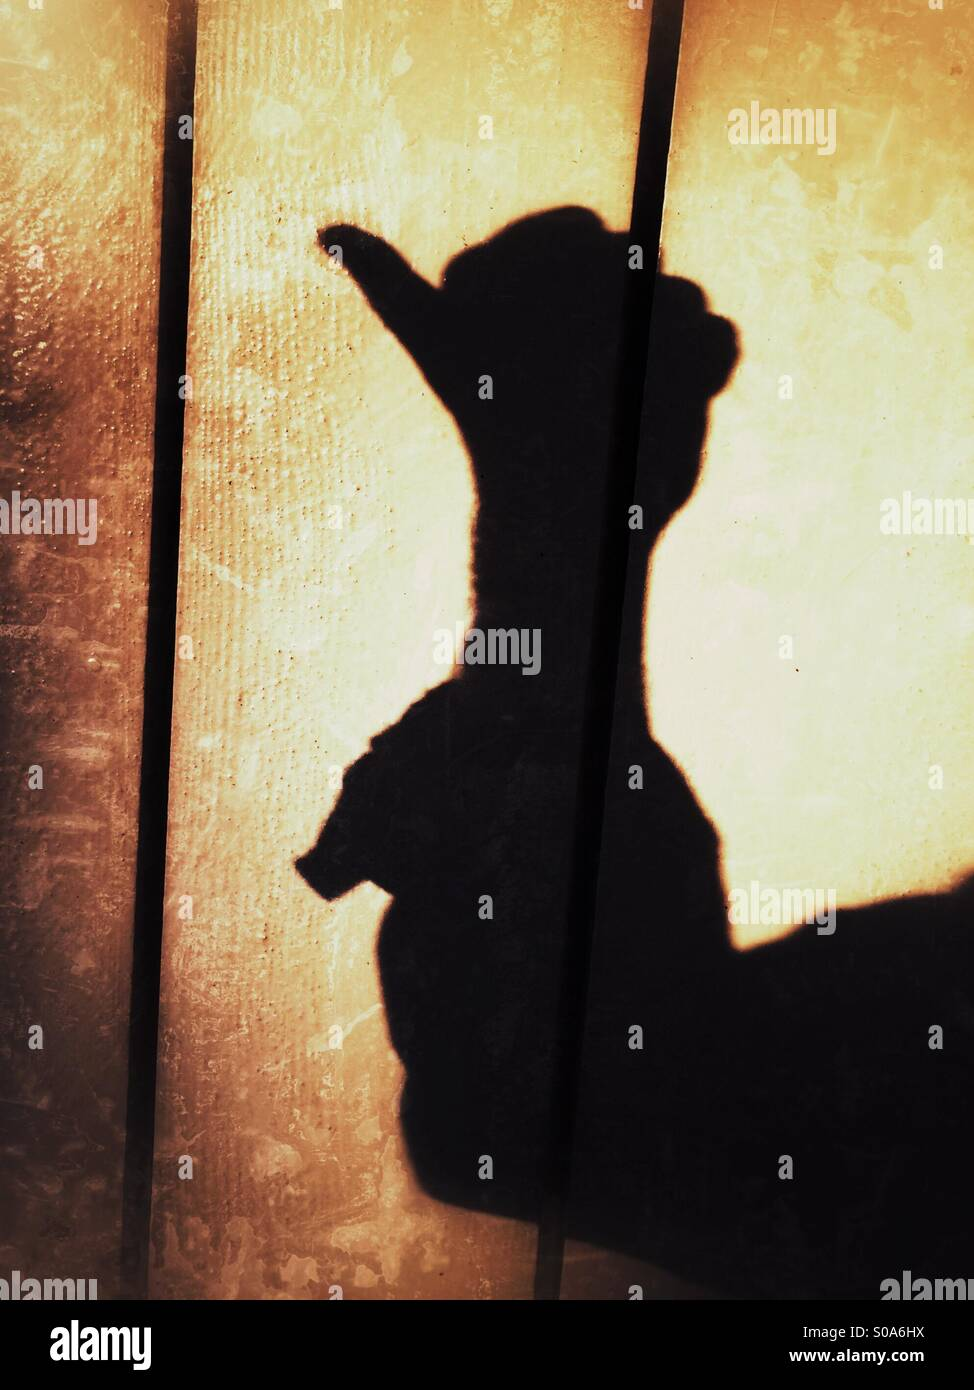 A man casting a shadow on a wall, counting on his hand. Number one. Stock Photo